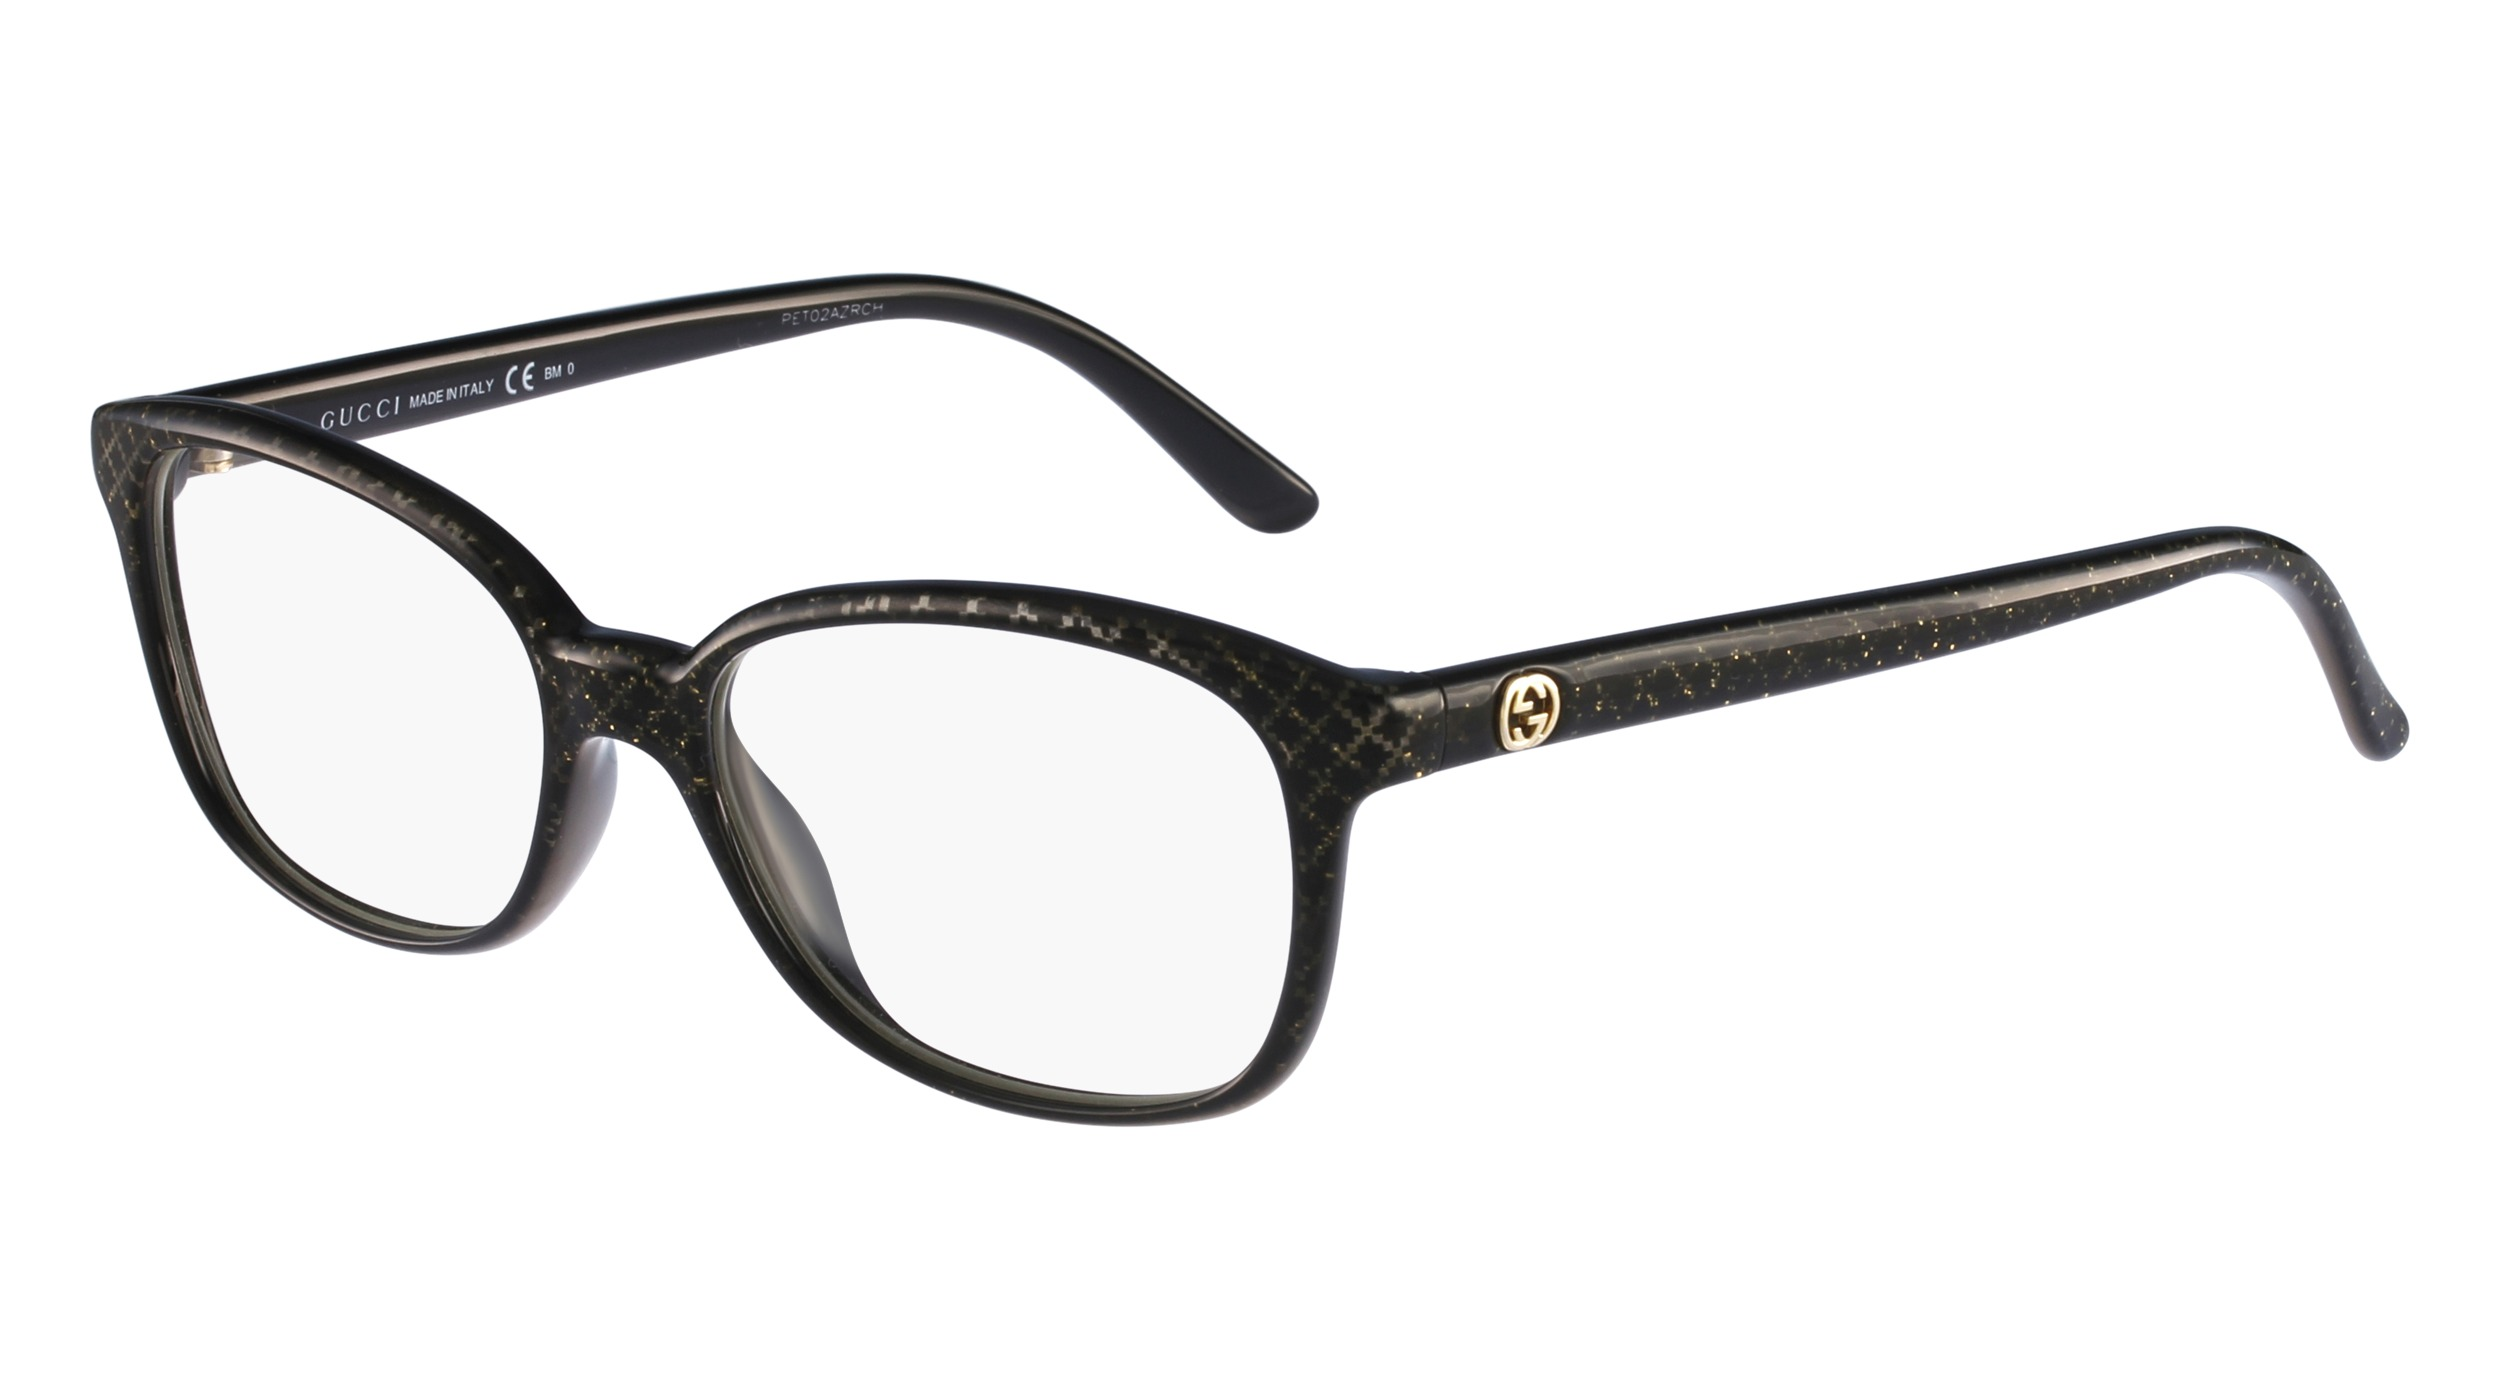 Gucci GG3629S-S-DXF-53-140-99